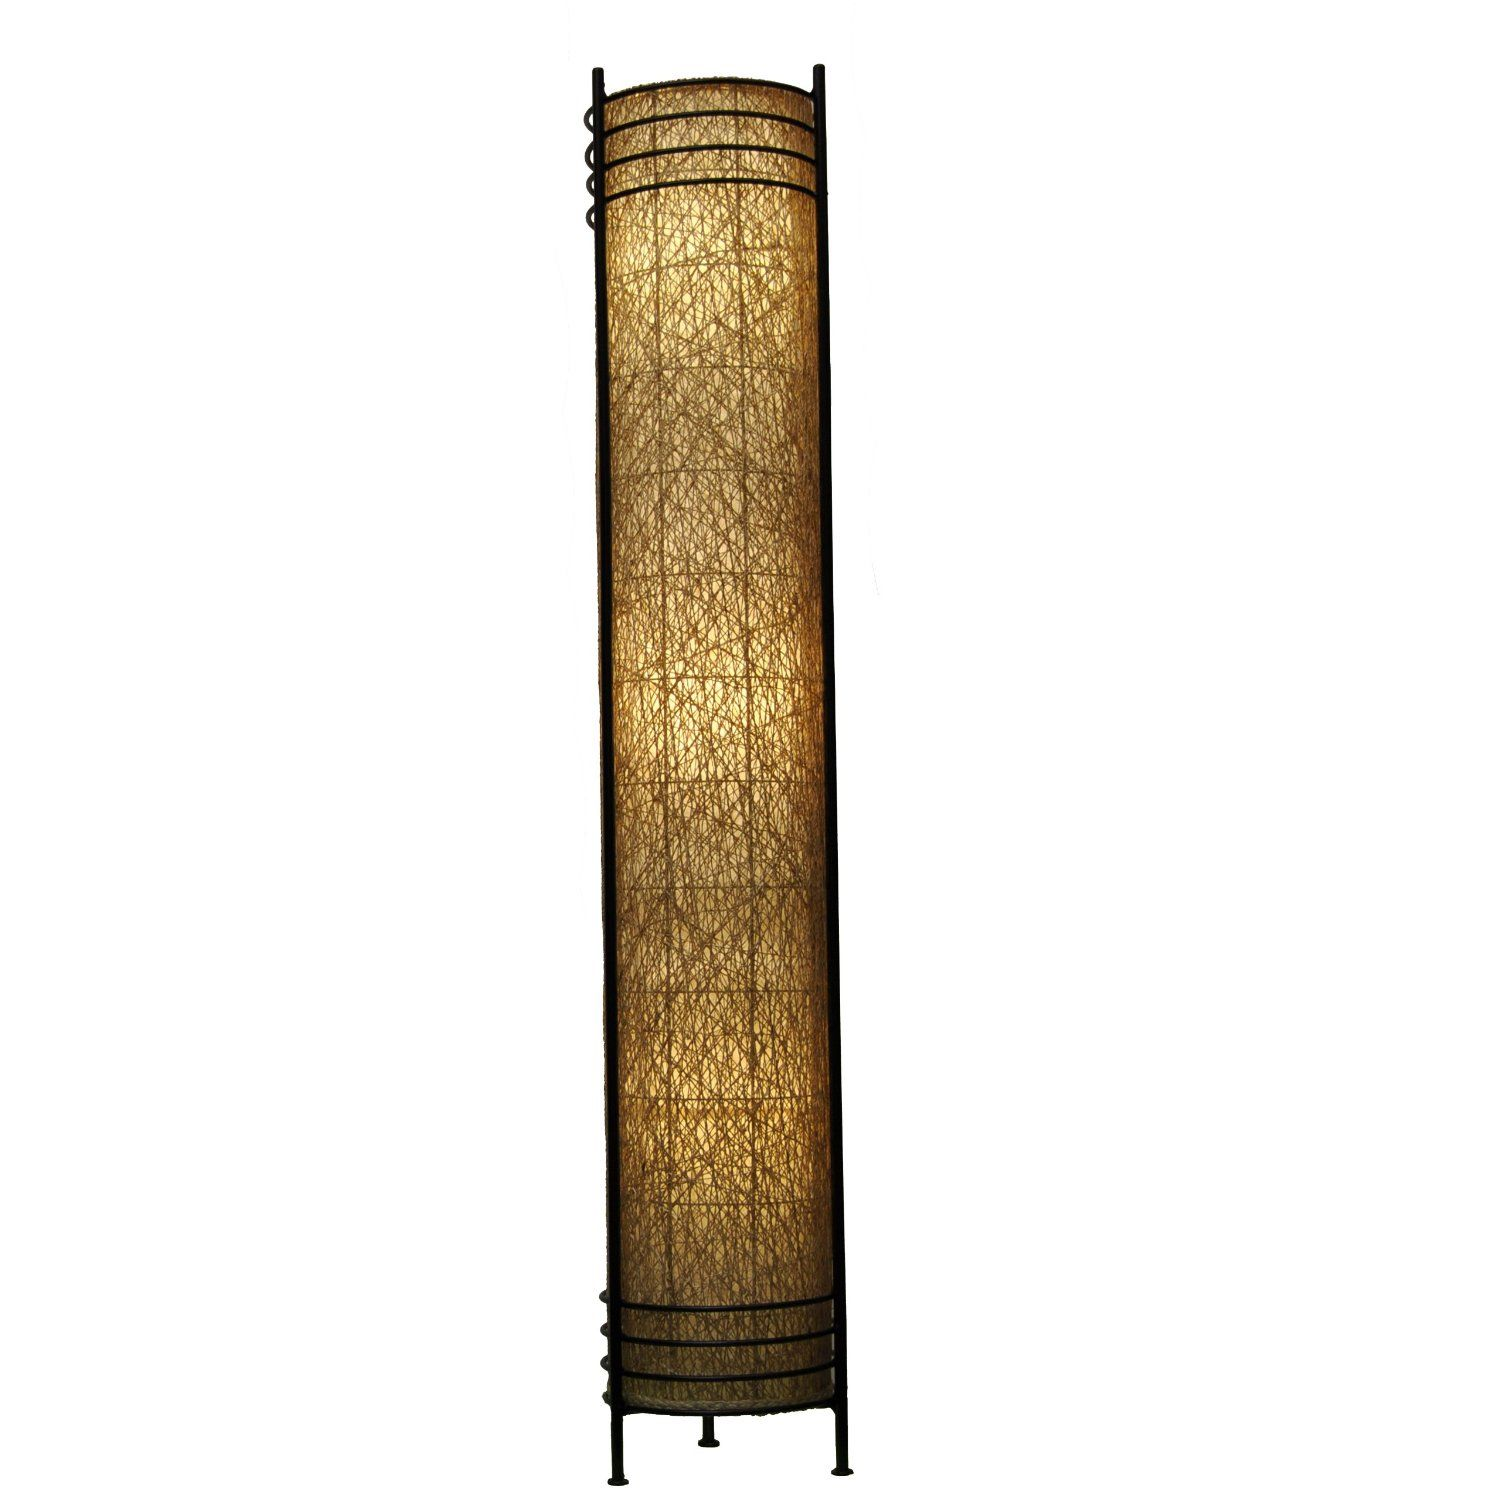 Amazon Com Eangee Tower Series Floor Lamp 48 Inch Tall Natural Floor Lamps Floor Lamp Large Floor Lamp Natural Floor Lamps